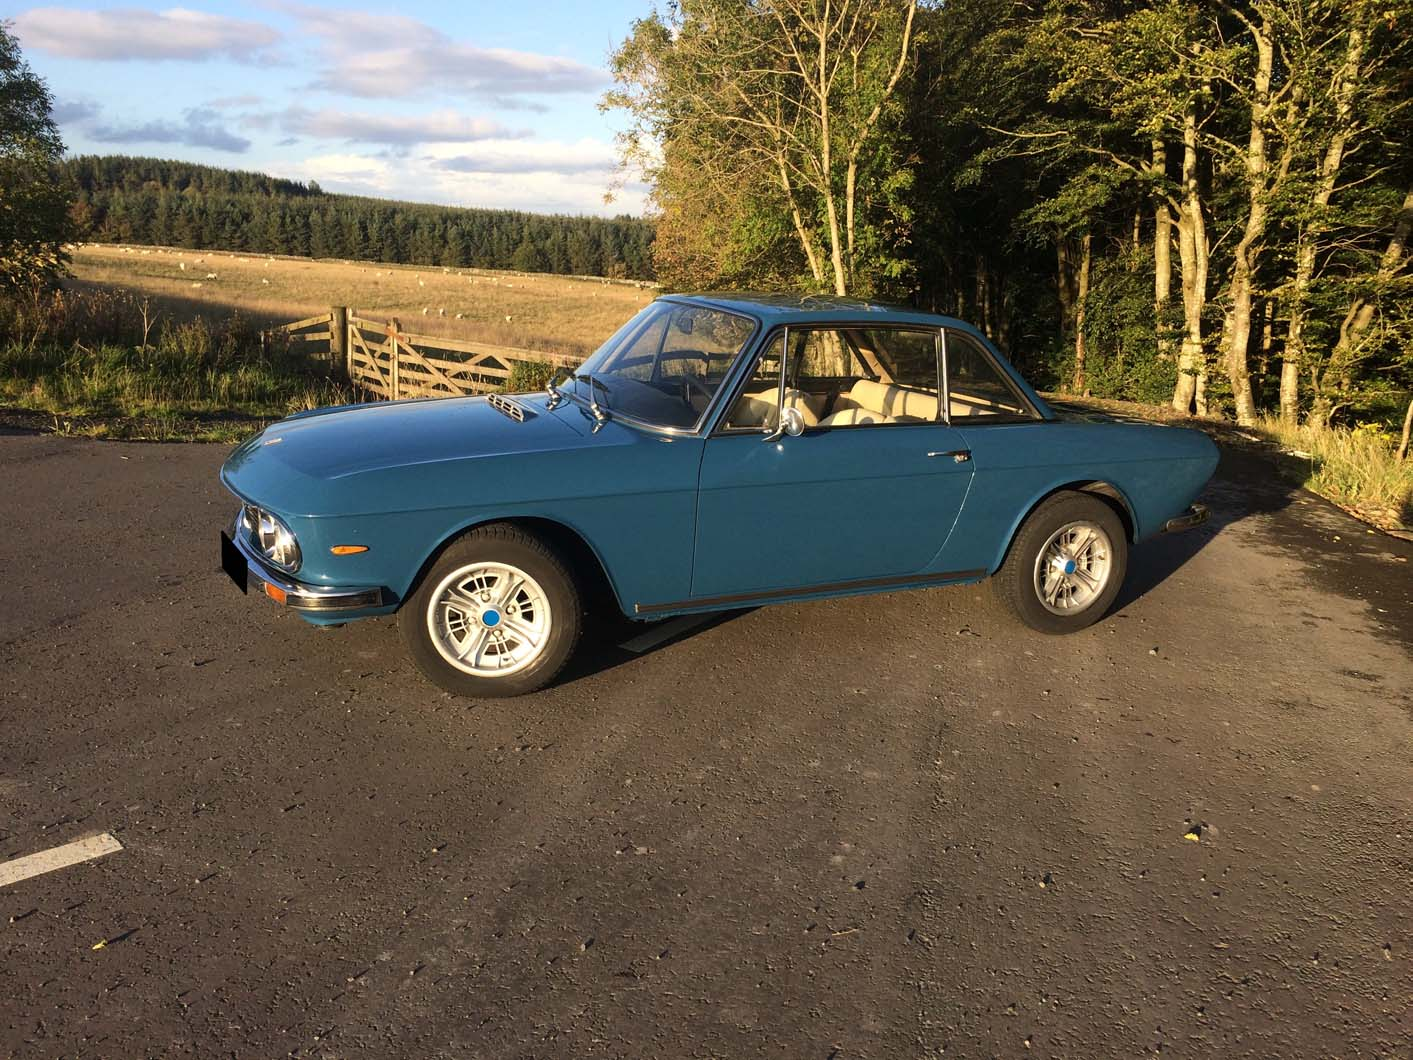 Life With A 1974 Lancia Fulvia 3 1 3s Driving This